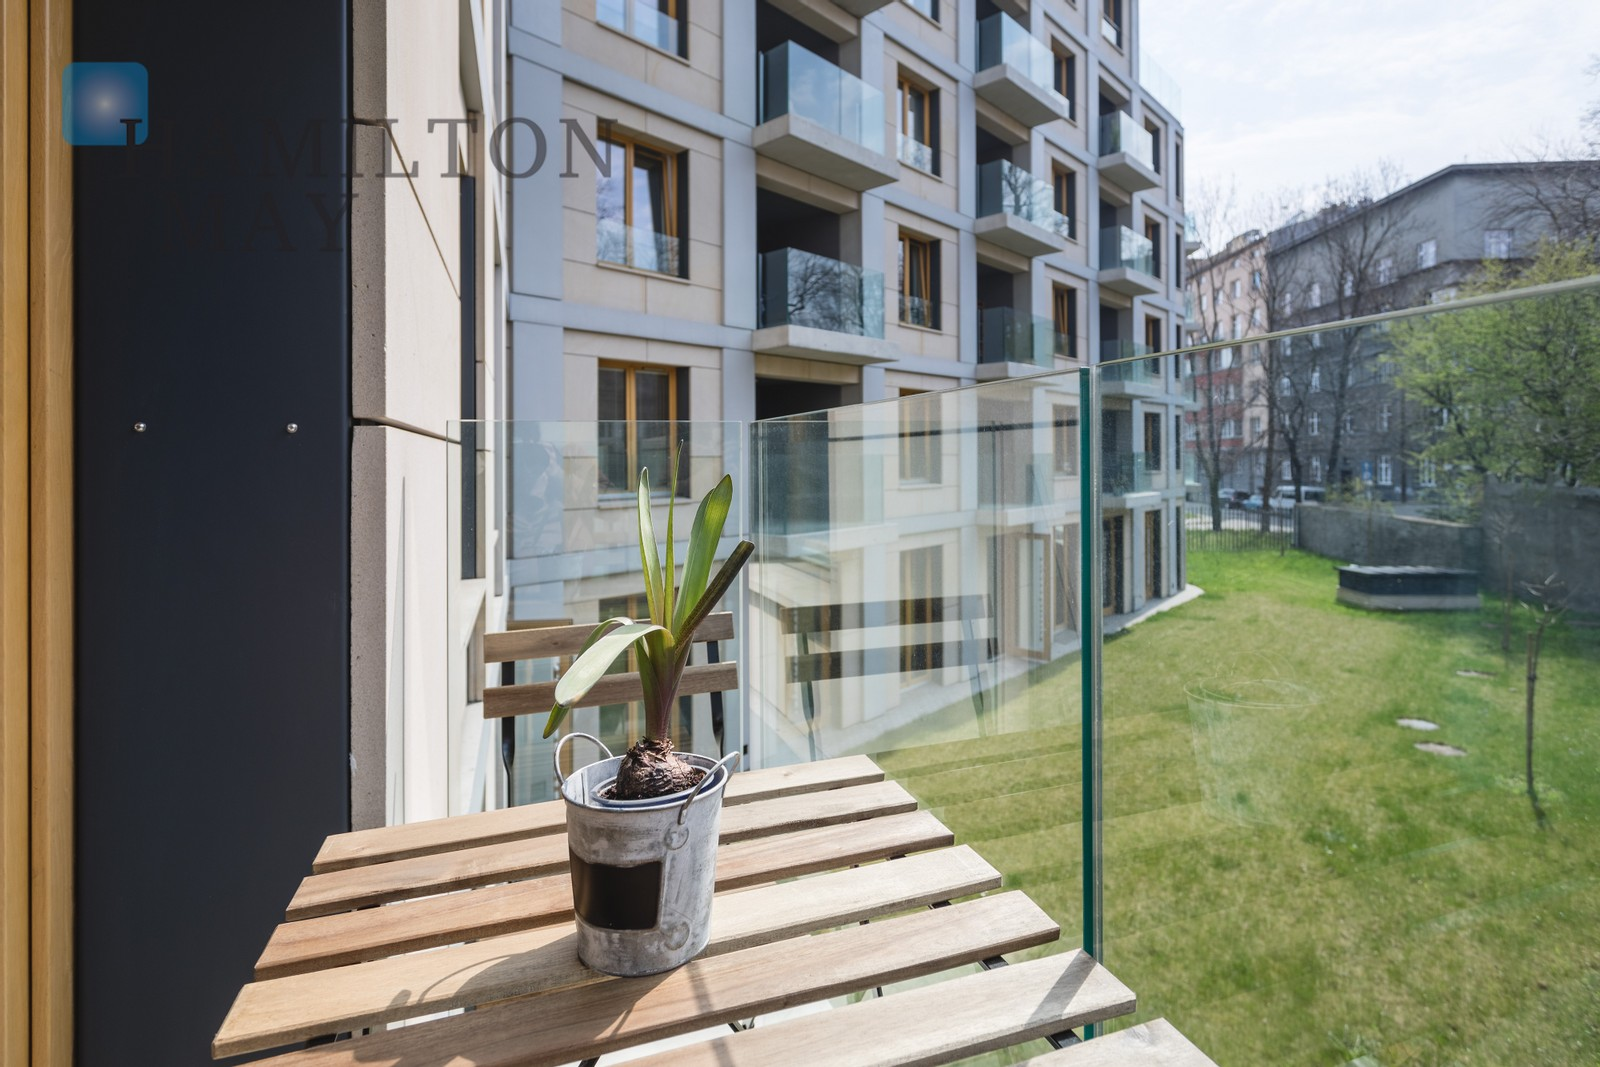 Unique apartment located in the Kossak Residence Krakow for sale